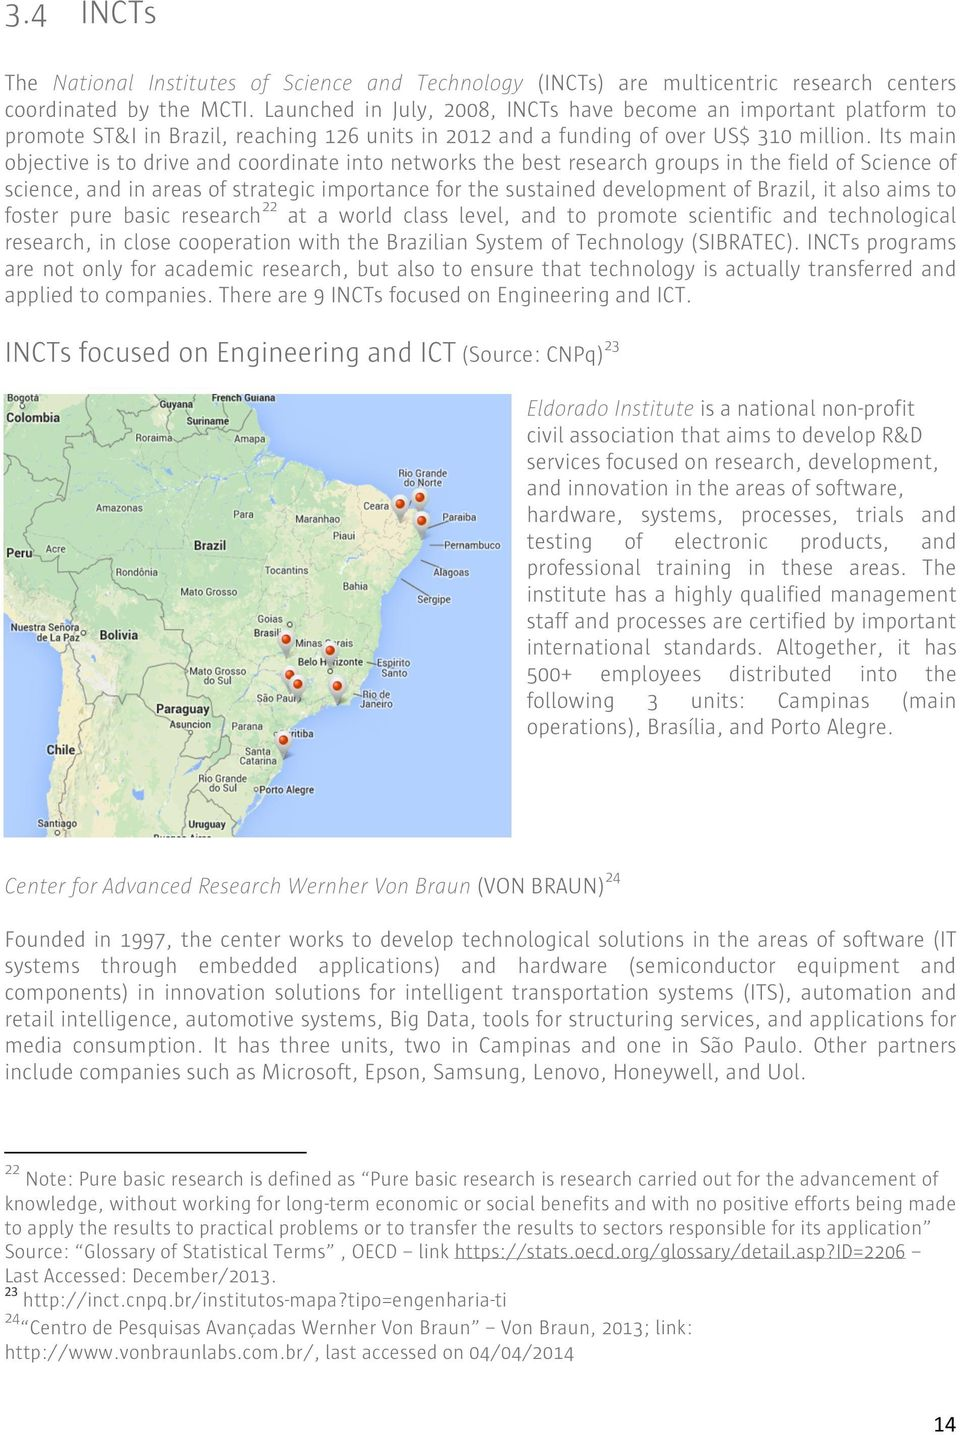 Its main objective is to drive and coordinate into networks the best research groups in the field of Science of science, and in areas of strategic importance for the sustained development of Brazil,